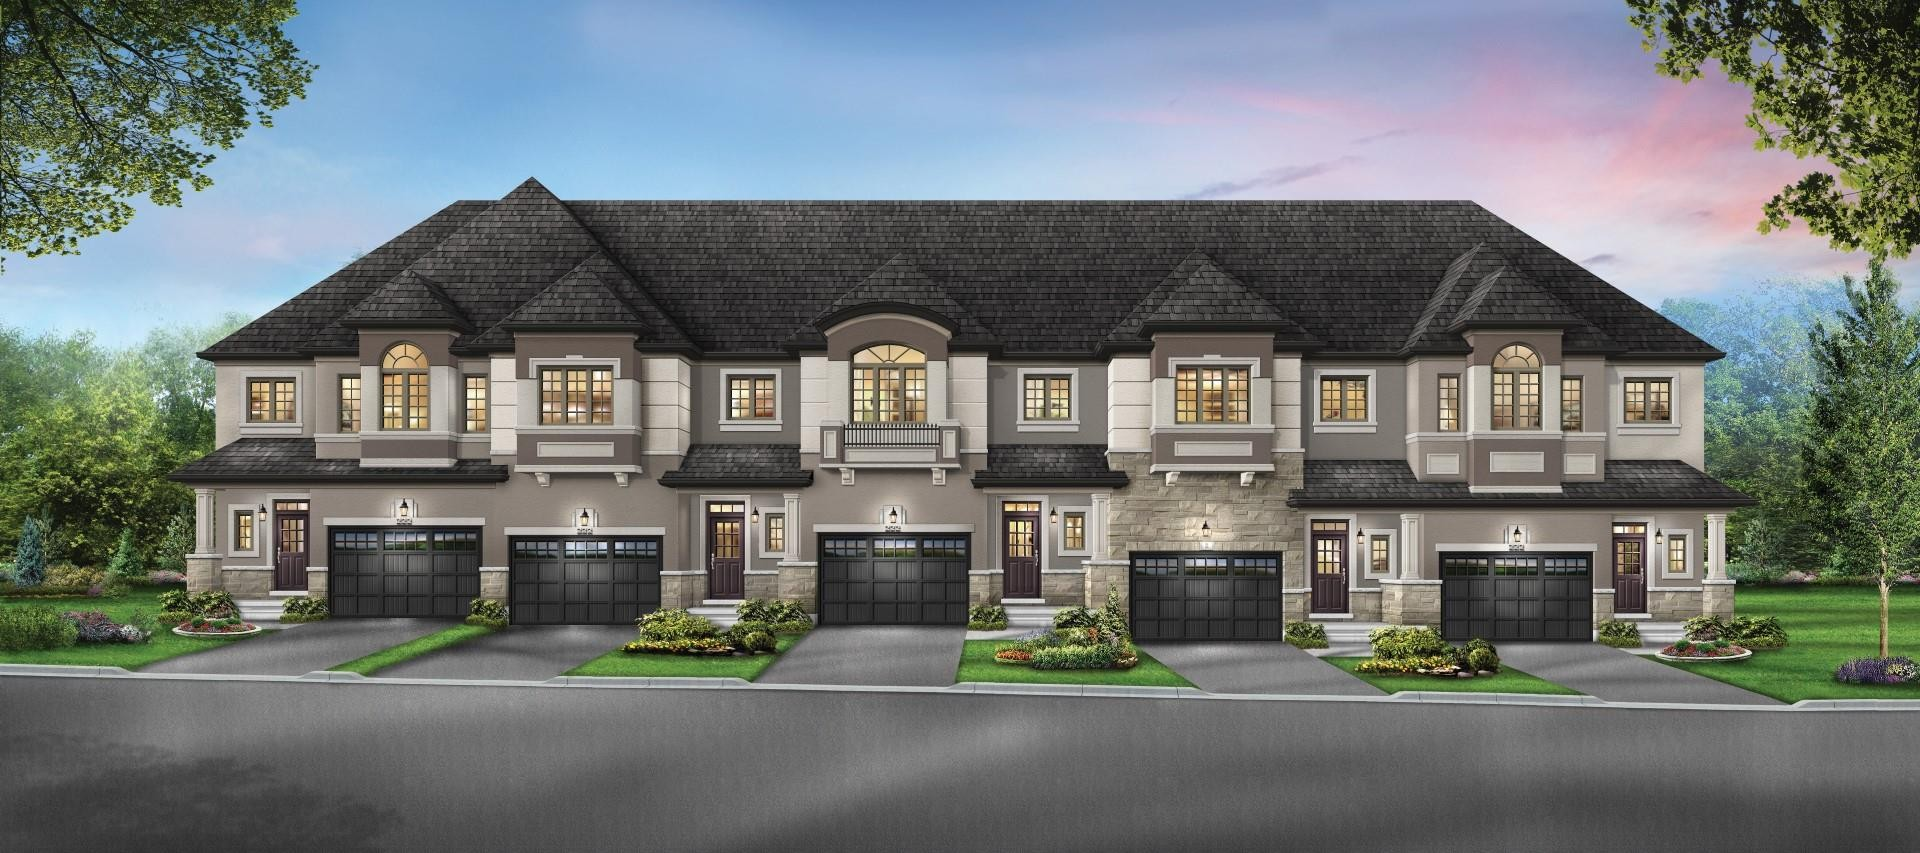 Greenscapes of Ancaster at 515 Garner Rd W, Ancaster 0